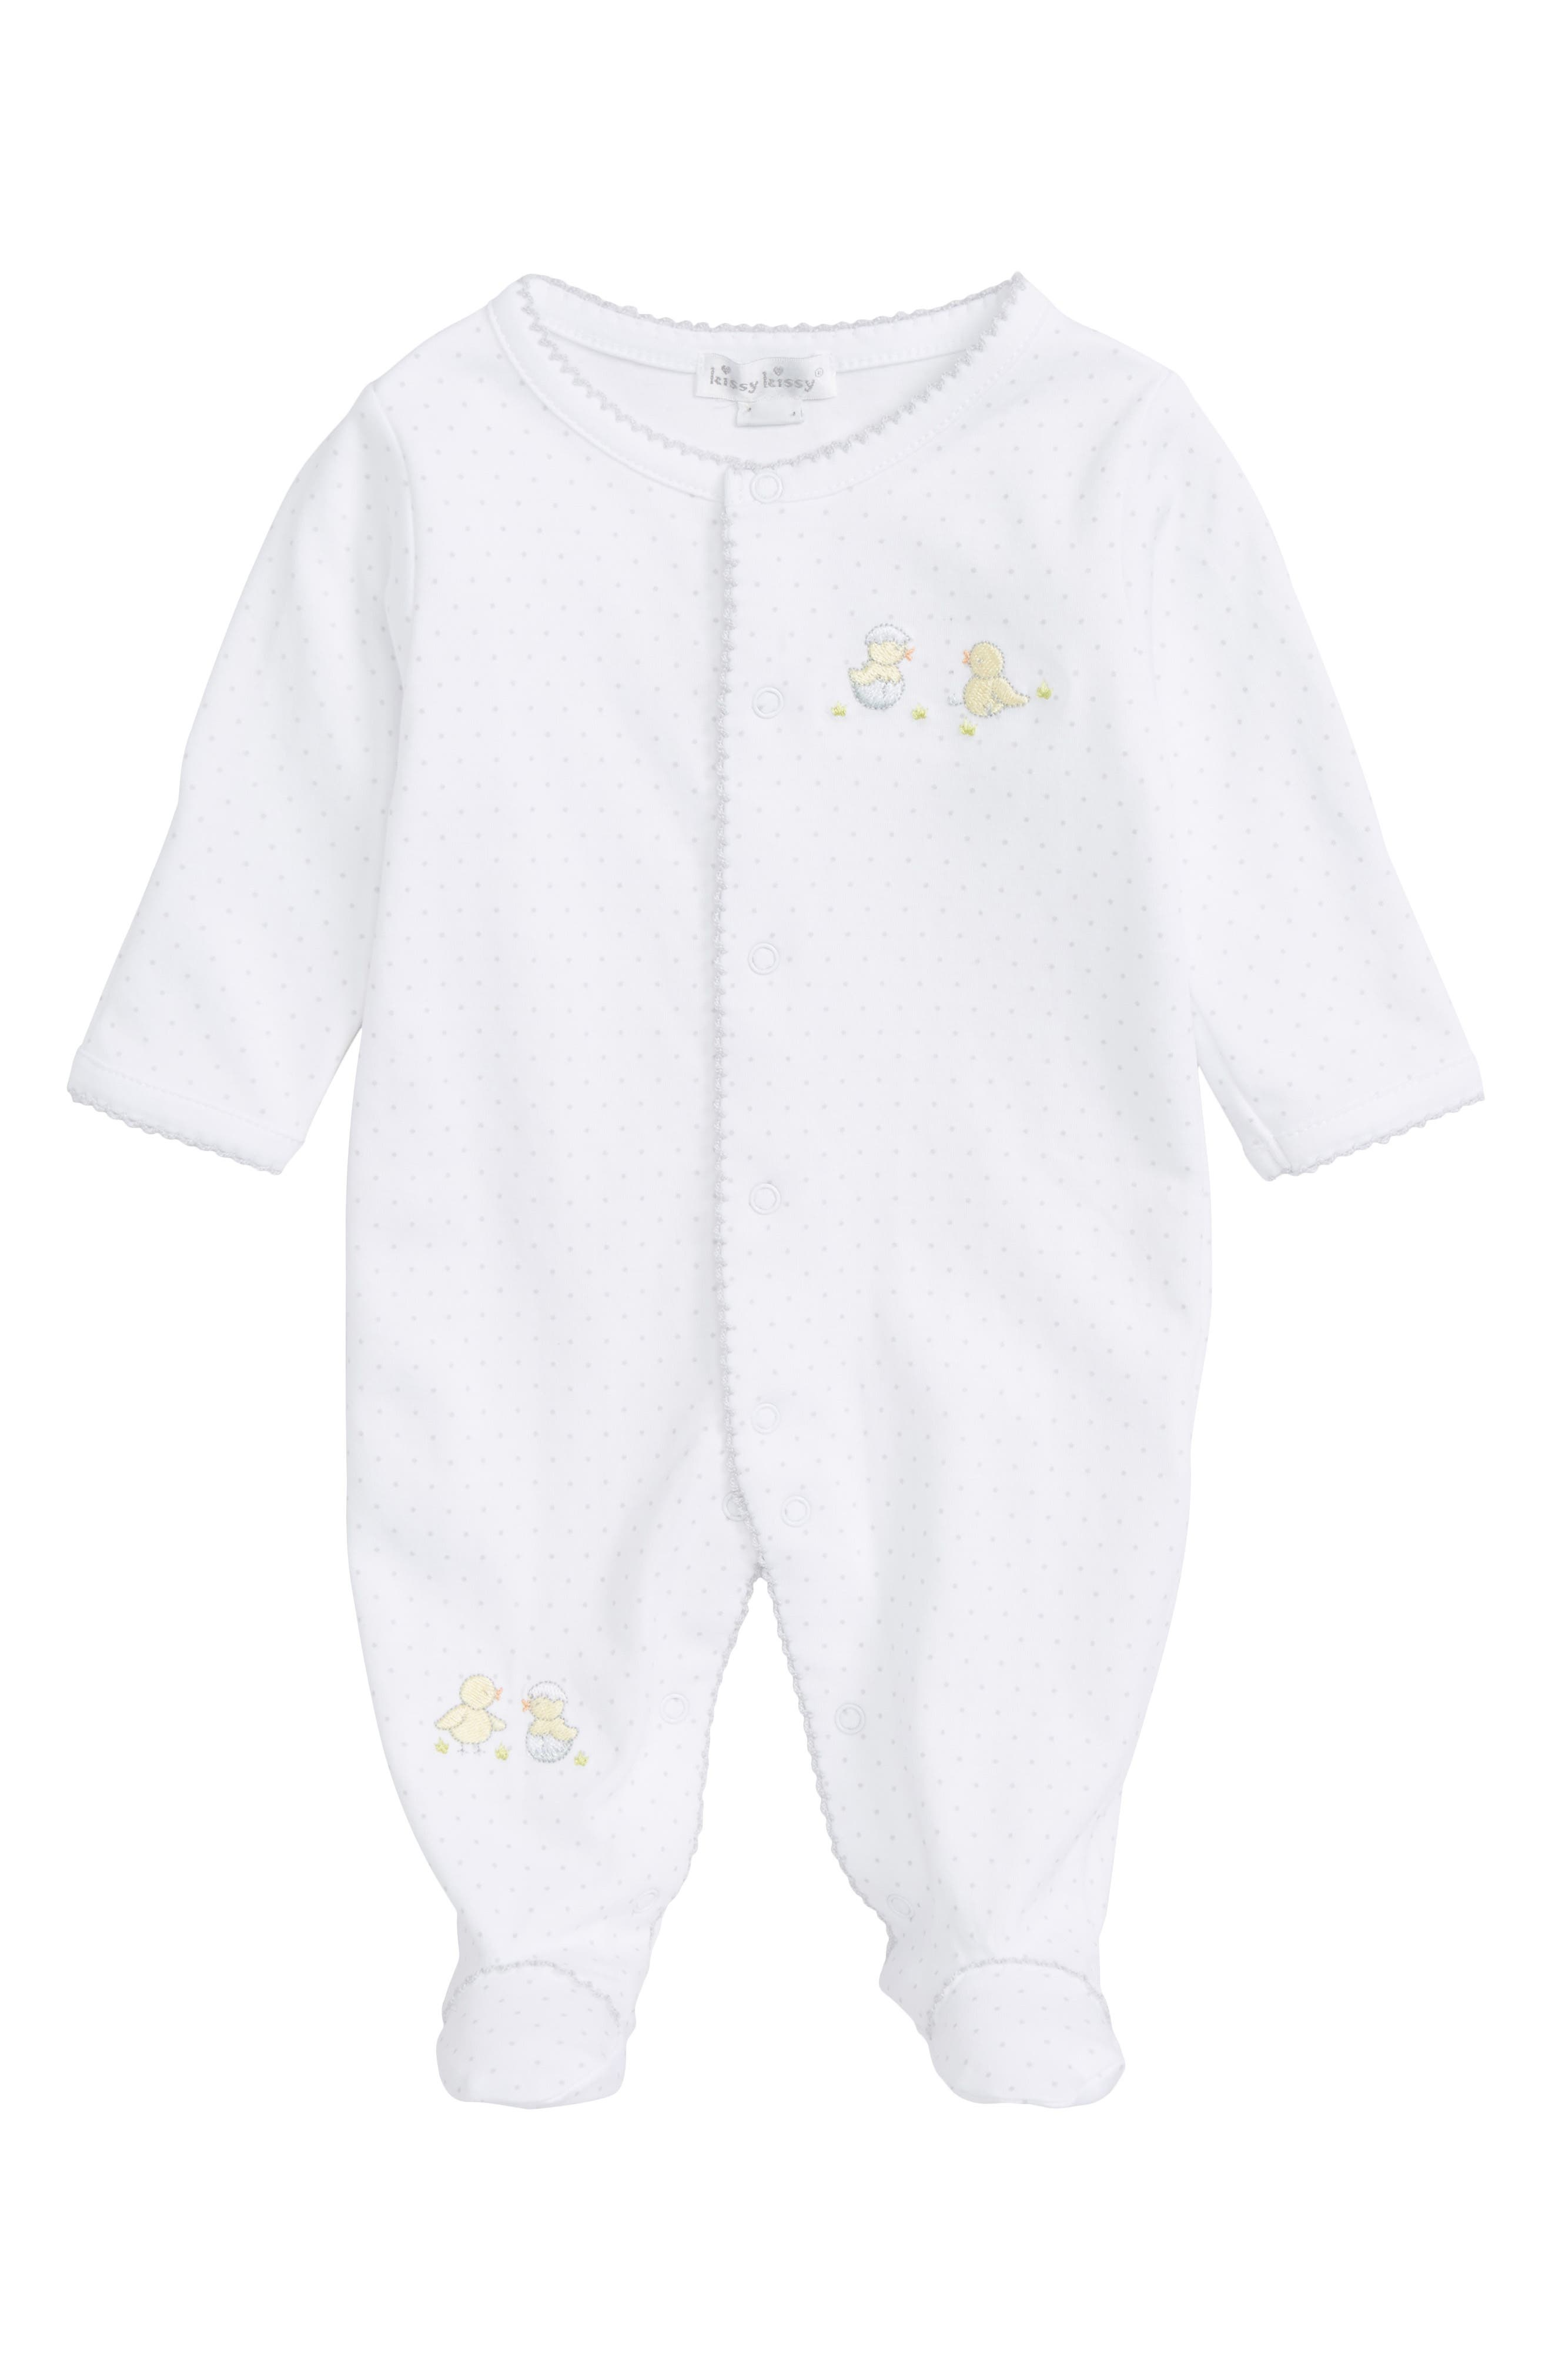 Alternate Image 1 Selected - Kissy Kissy Hatchlings Pima Cotton Footie (Baby)